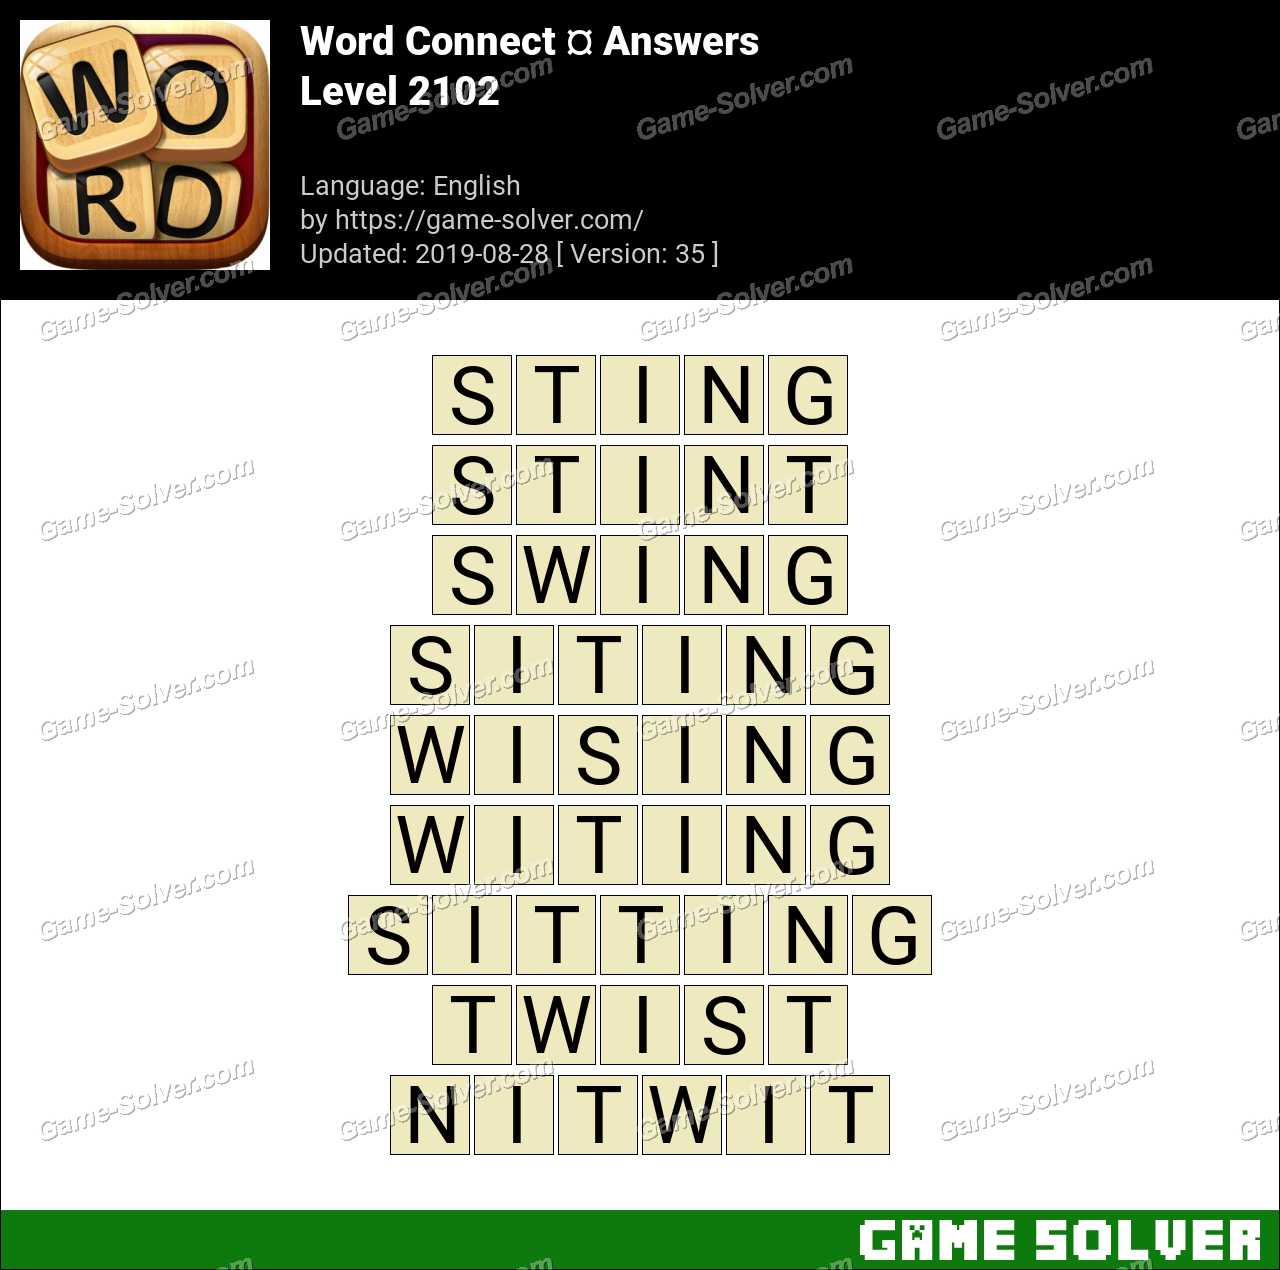 Word Connect Level 2102 Answers - Game Solver